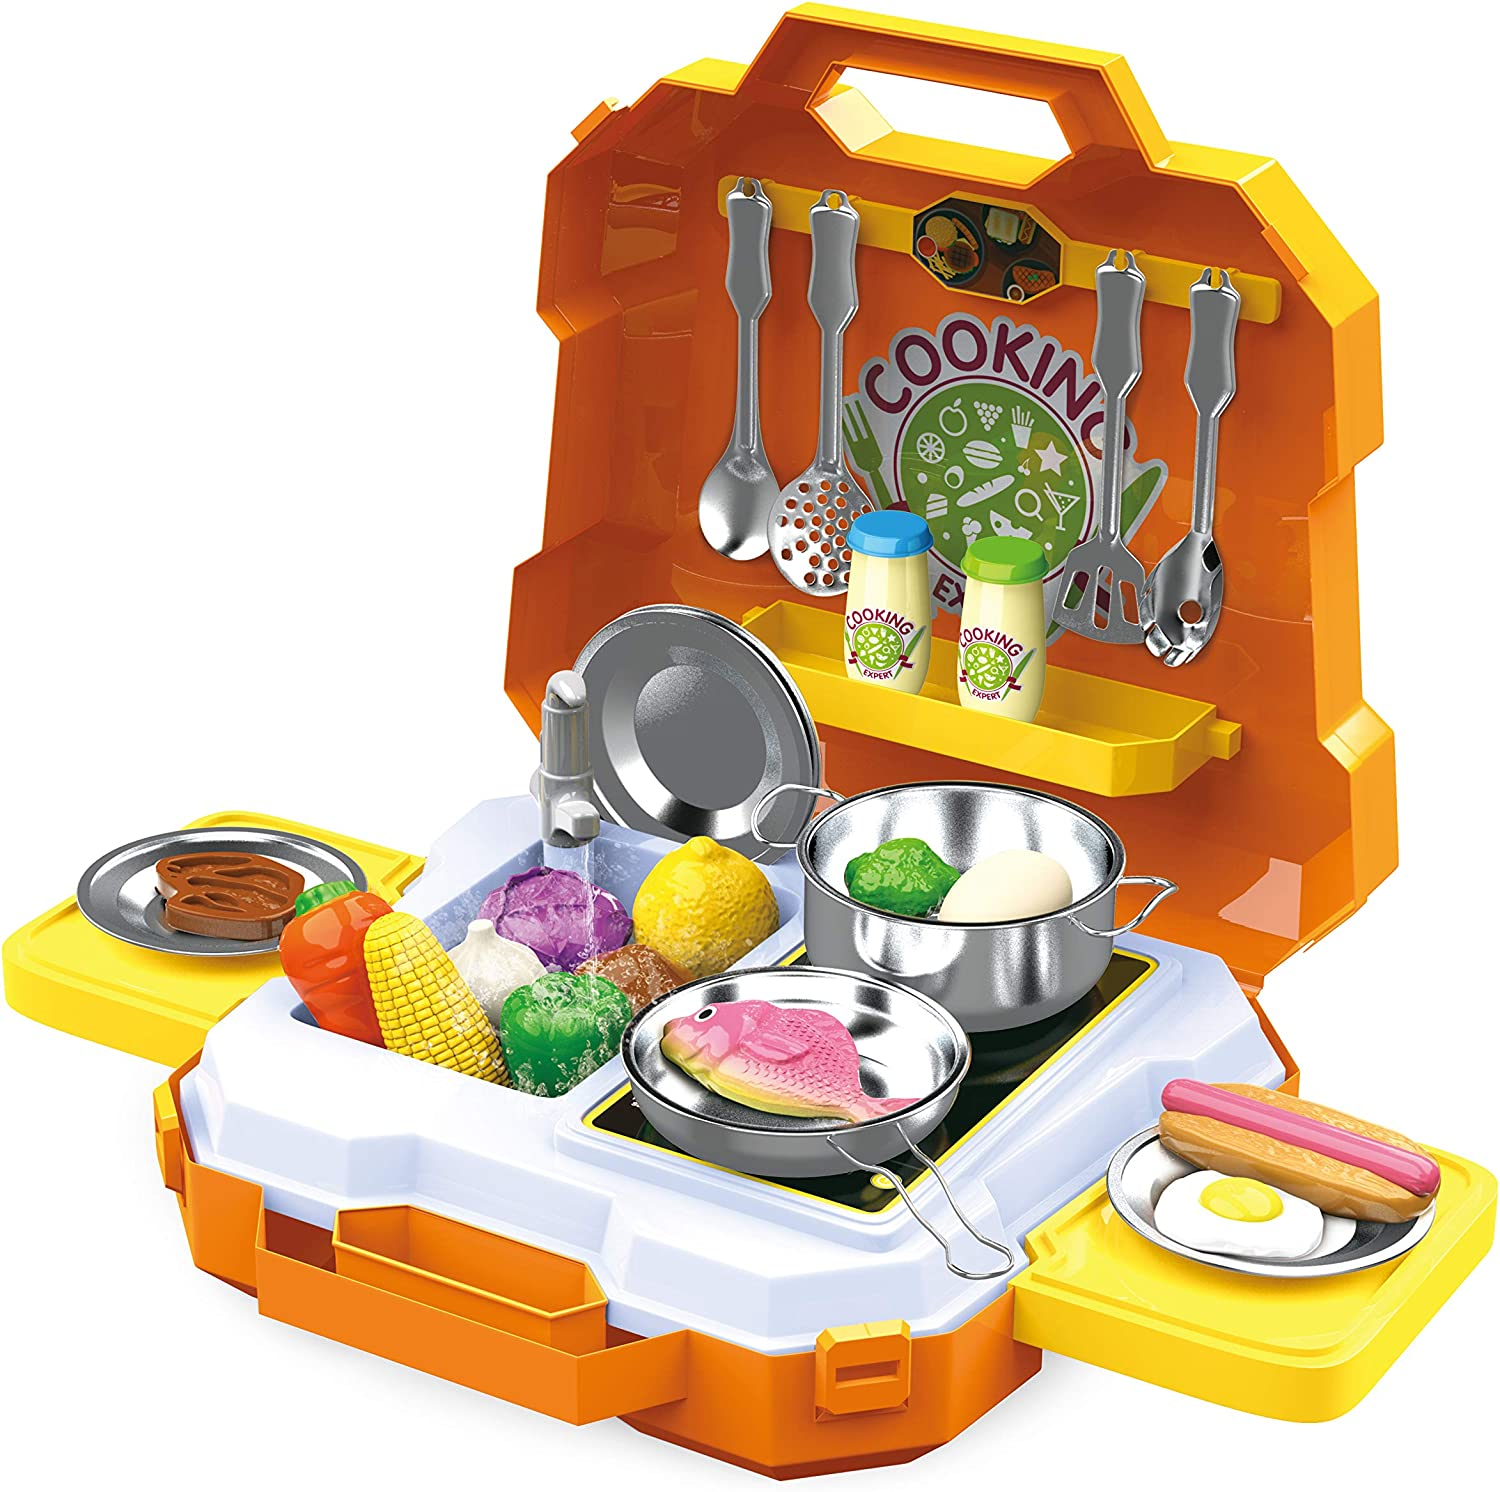 JOYIN 35 Pieces Kids Pretend Play Kitchen Toy Kit with Cookware Utensil Toys, Play Food, Pots and Pans for Kids, School Classroom Rewards and Chef Role Play